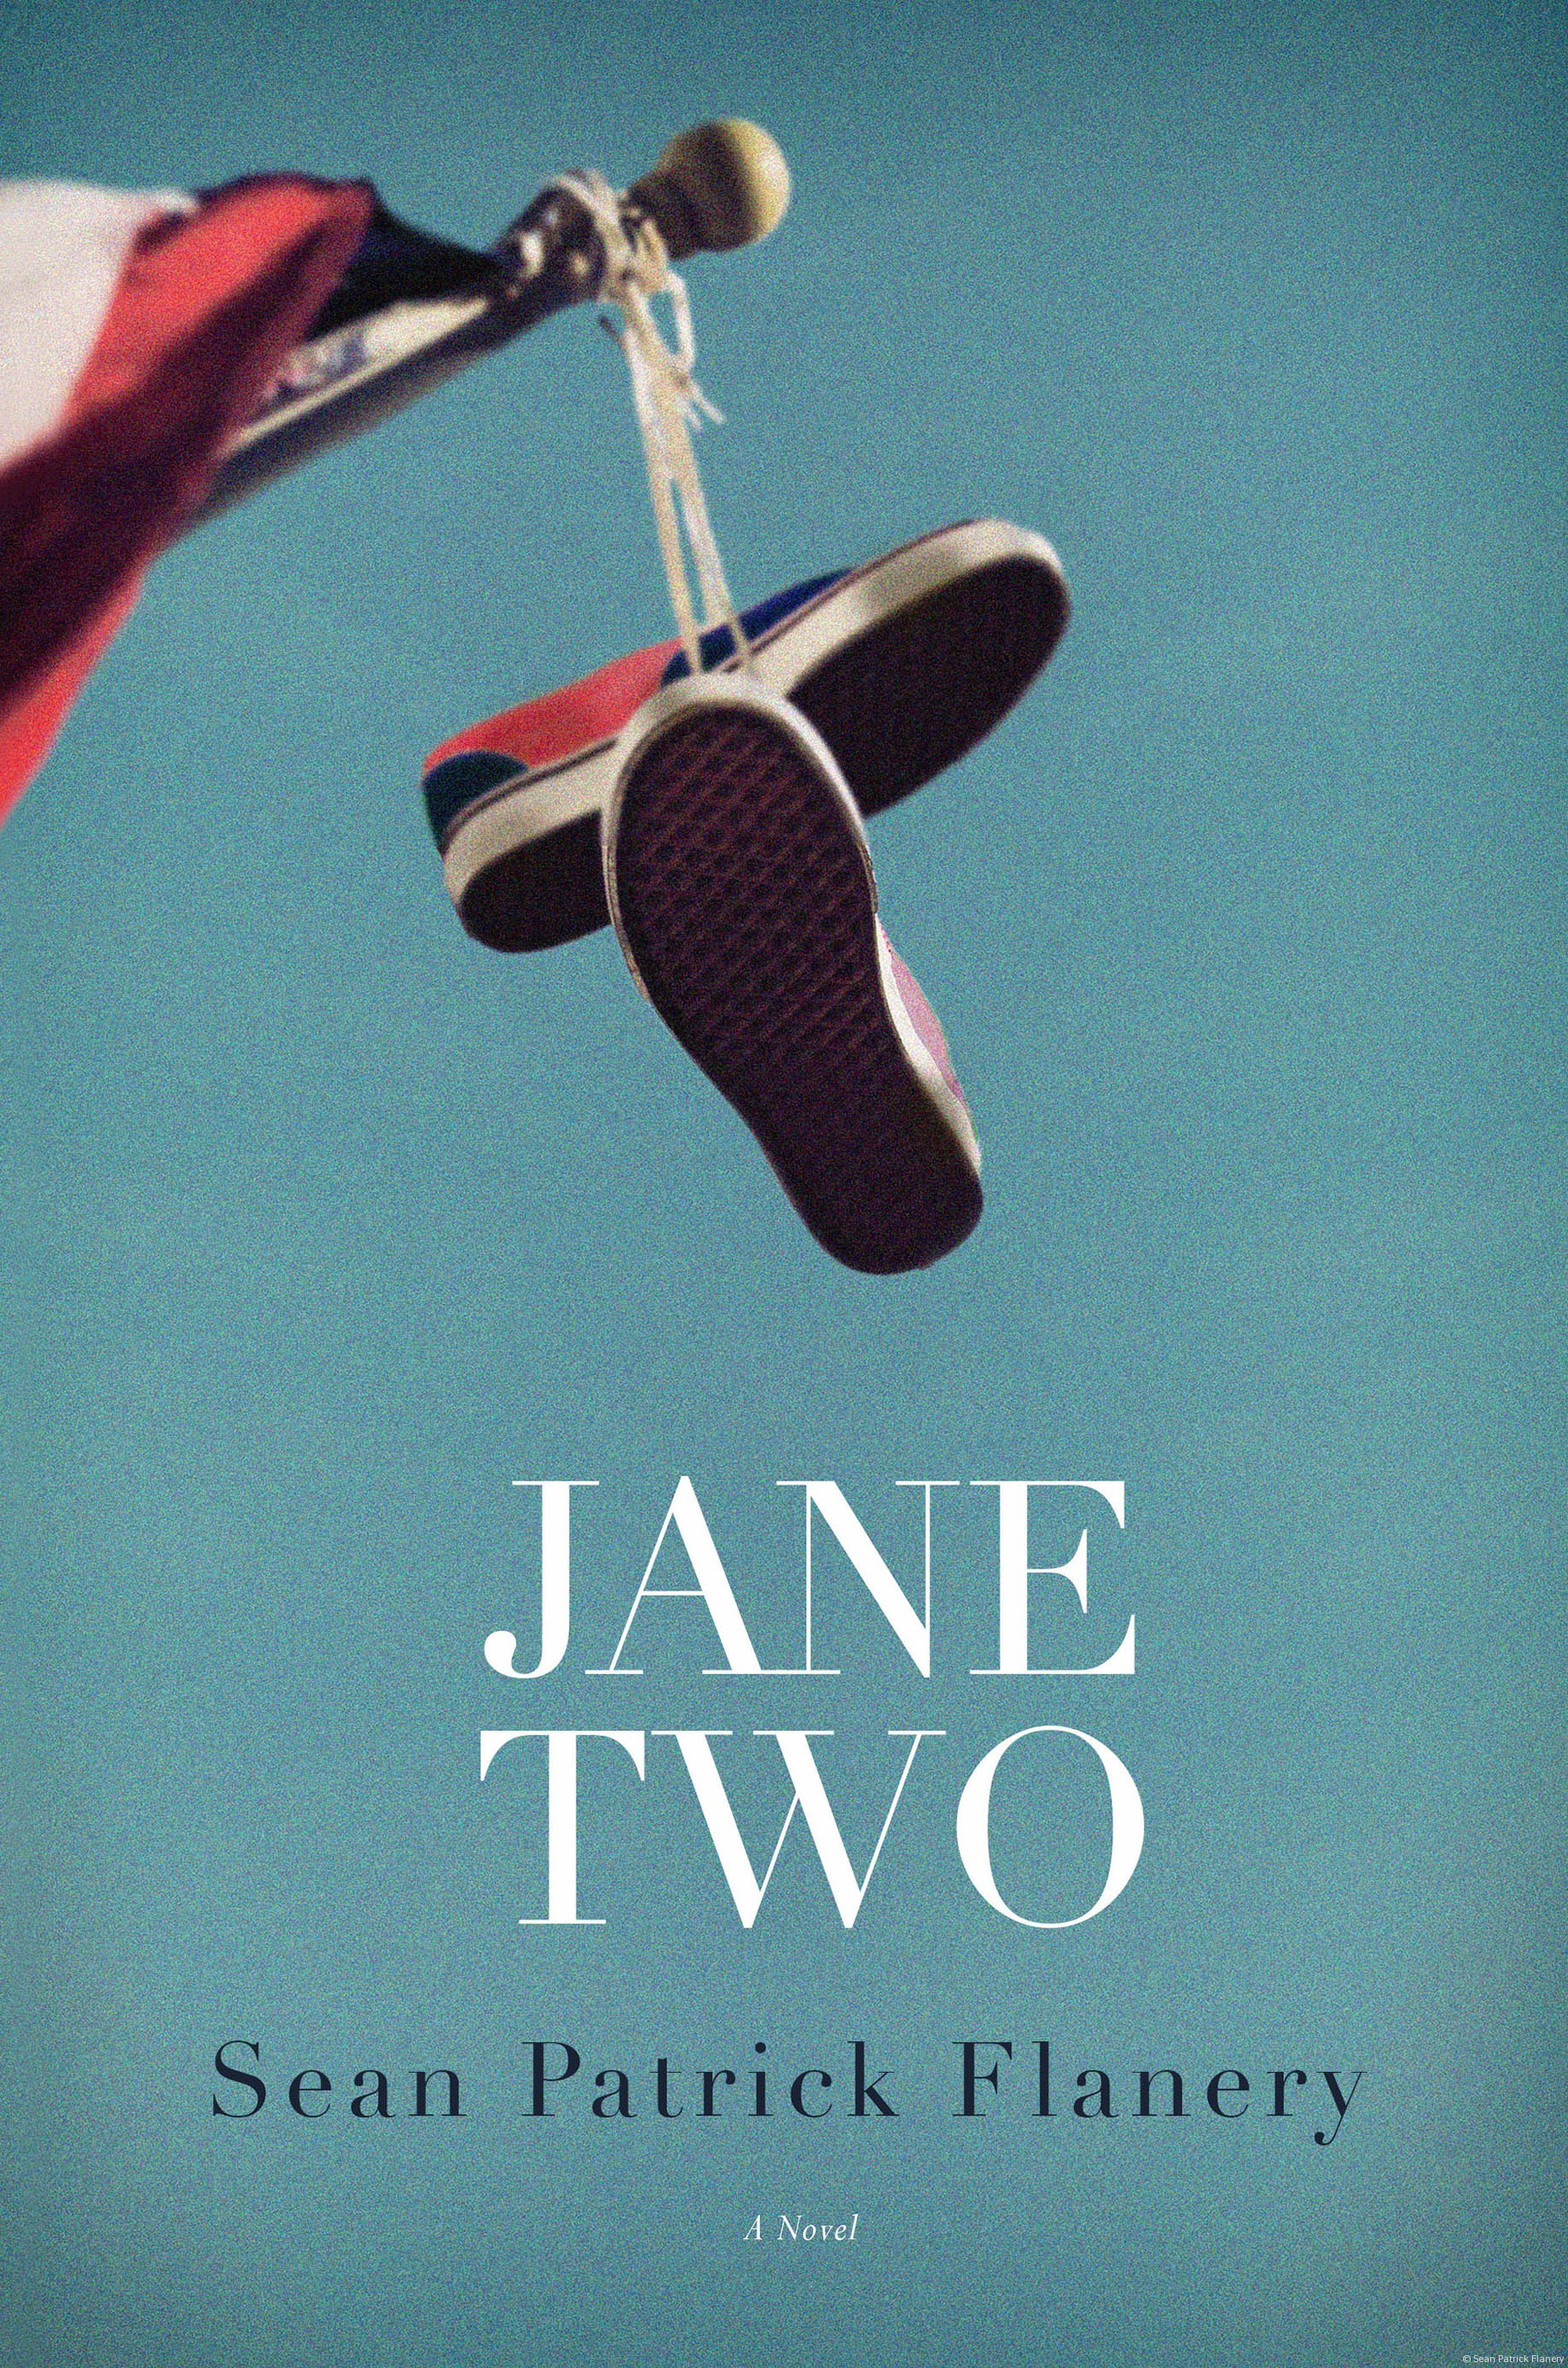 Jane Two by Sean Patrick Flanery book cover